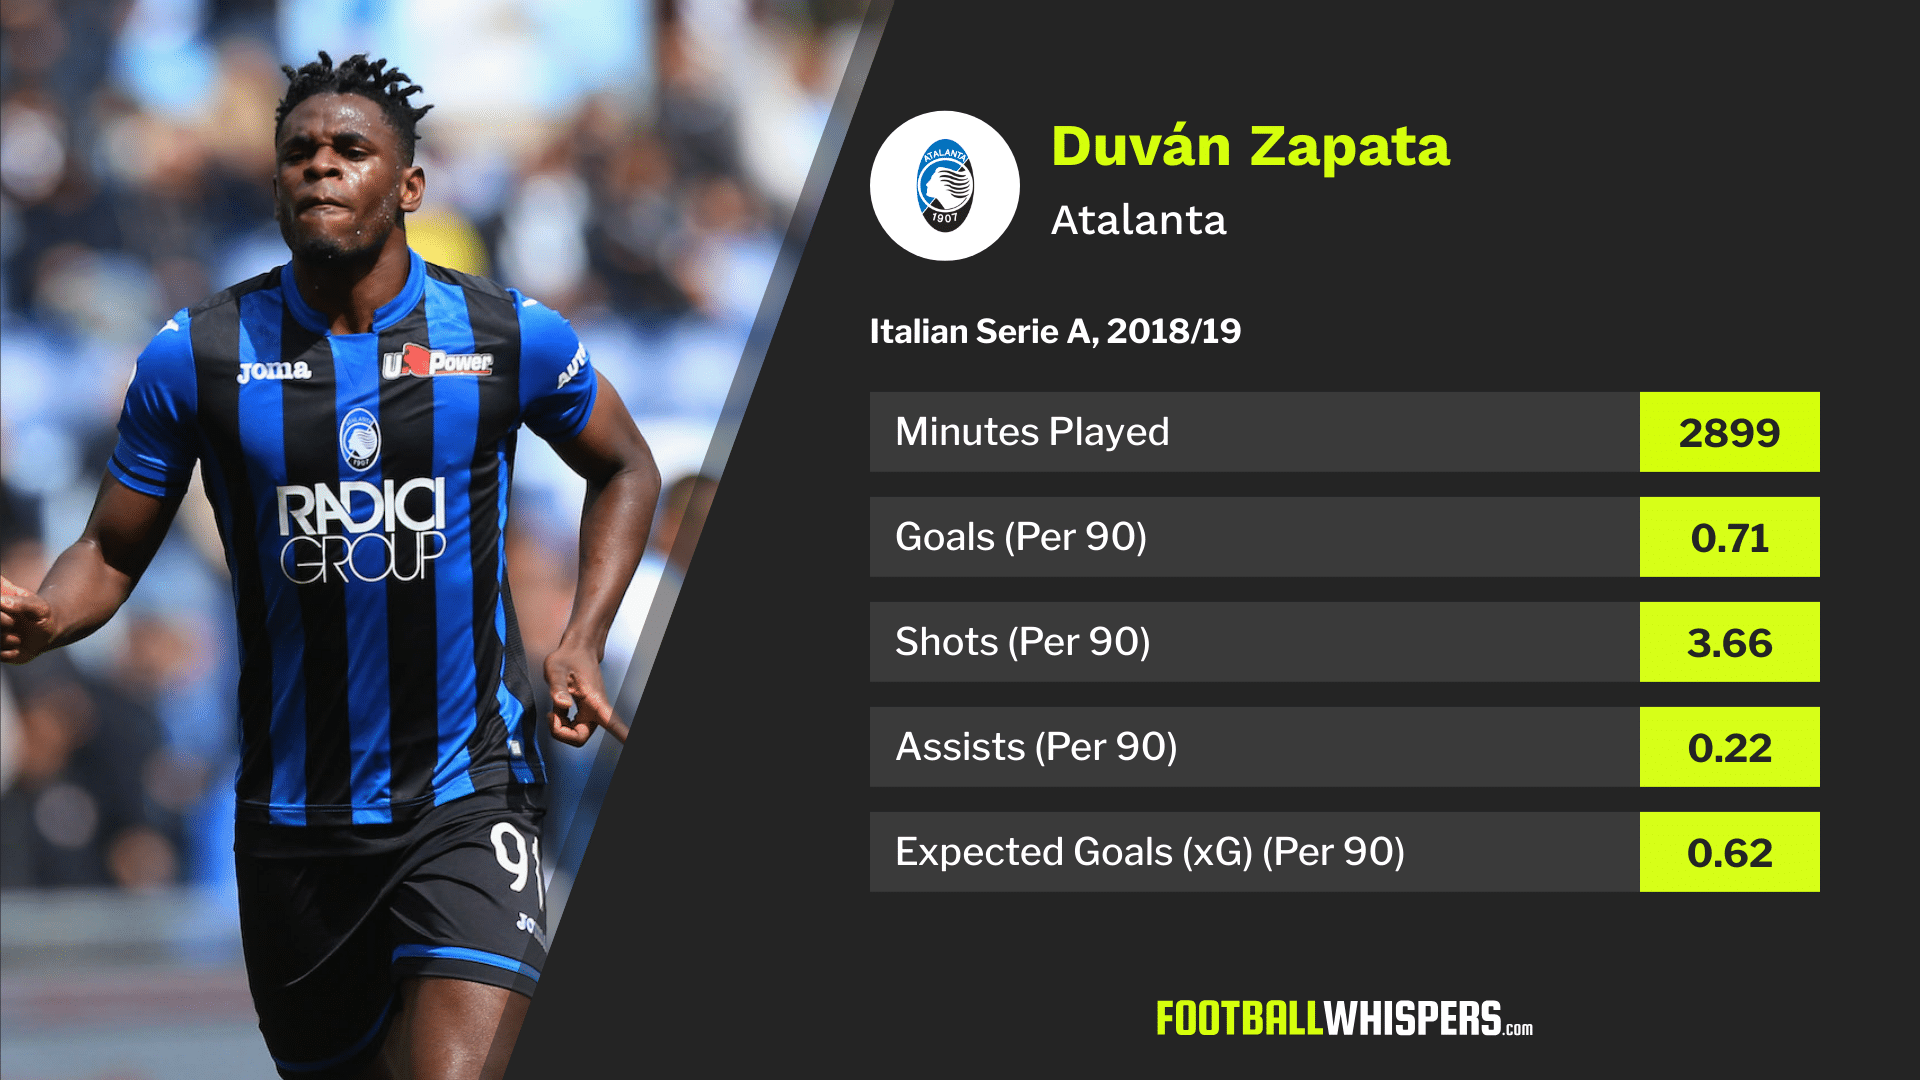 Could Duvan Zapata's fine statistics for Atalanta in 2018/19 make him a West Ham transfer target?